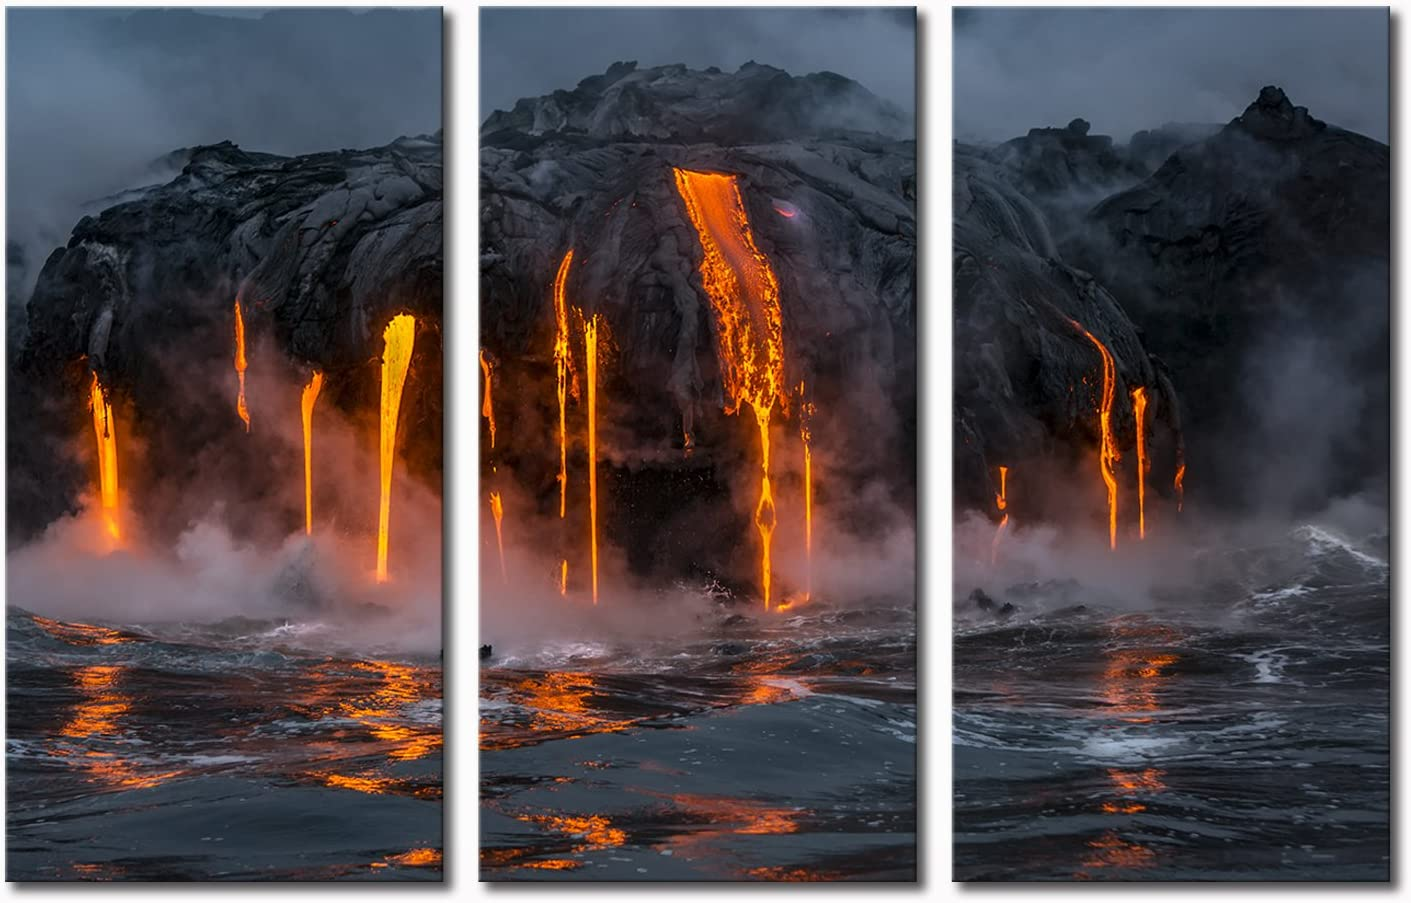 Amazon Com Klvos 3 Piece Canvas Wall Art Twilight Flow Sea View Of Kilauea Volcano In Big Island Hawaii United States Modern Home Decor Stretched And Framed Ready To Hang 16 X32 X3